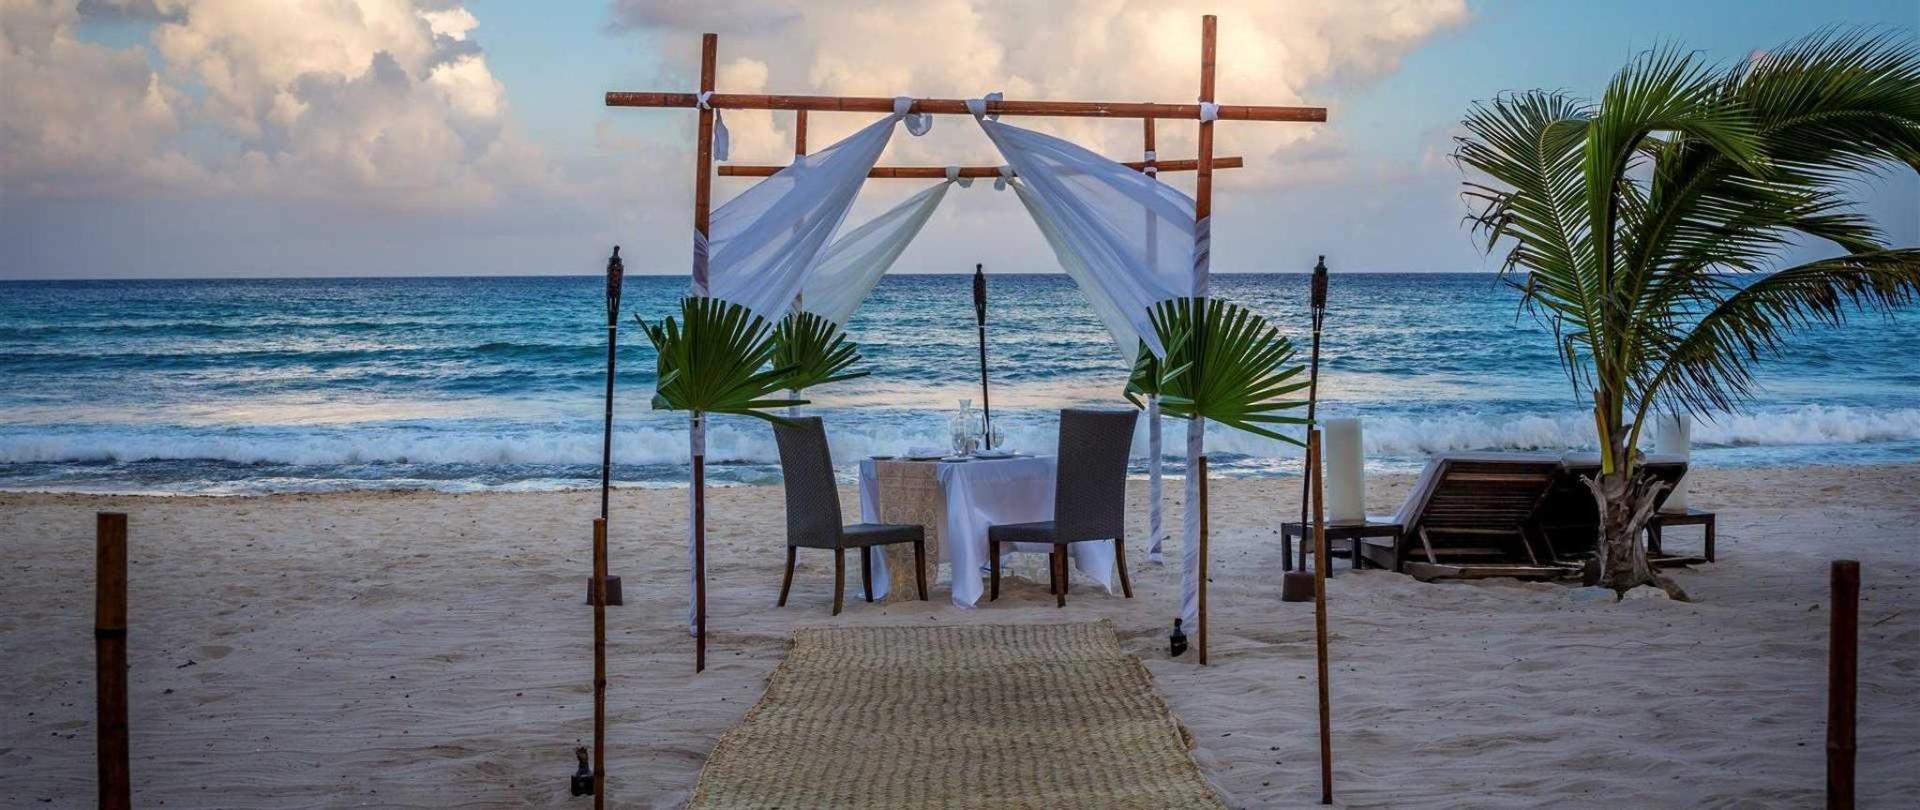 Le Reve Hotel & Spa - Boutique Beachfront